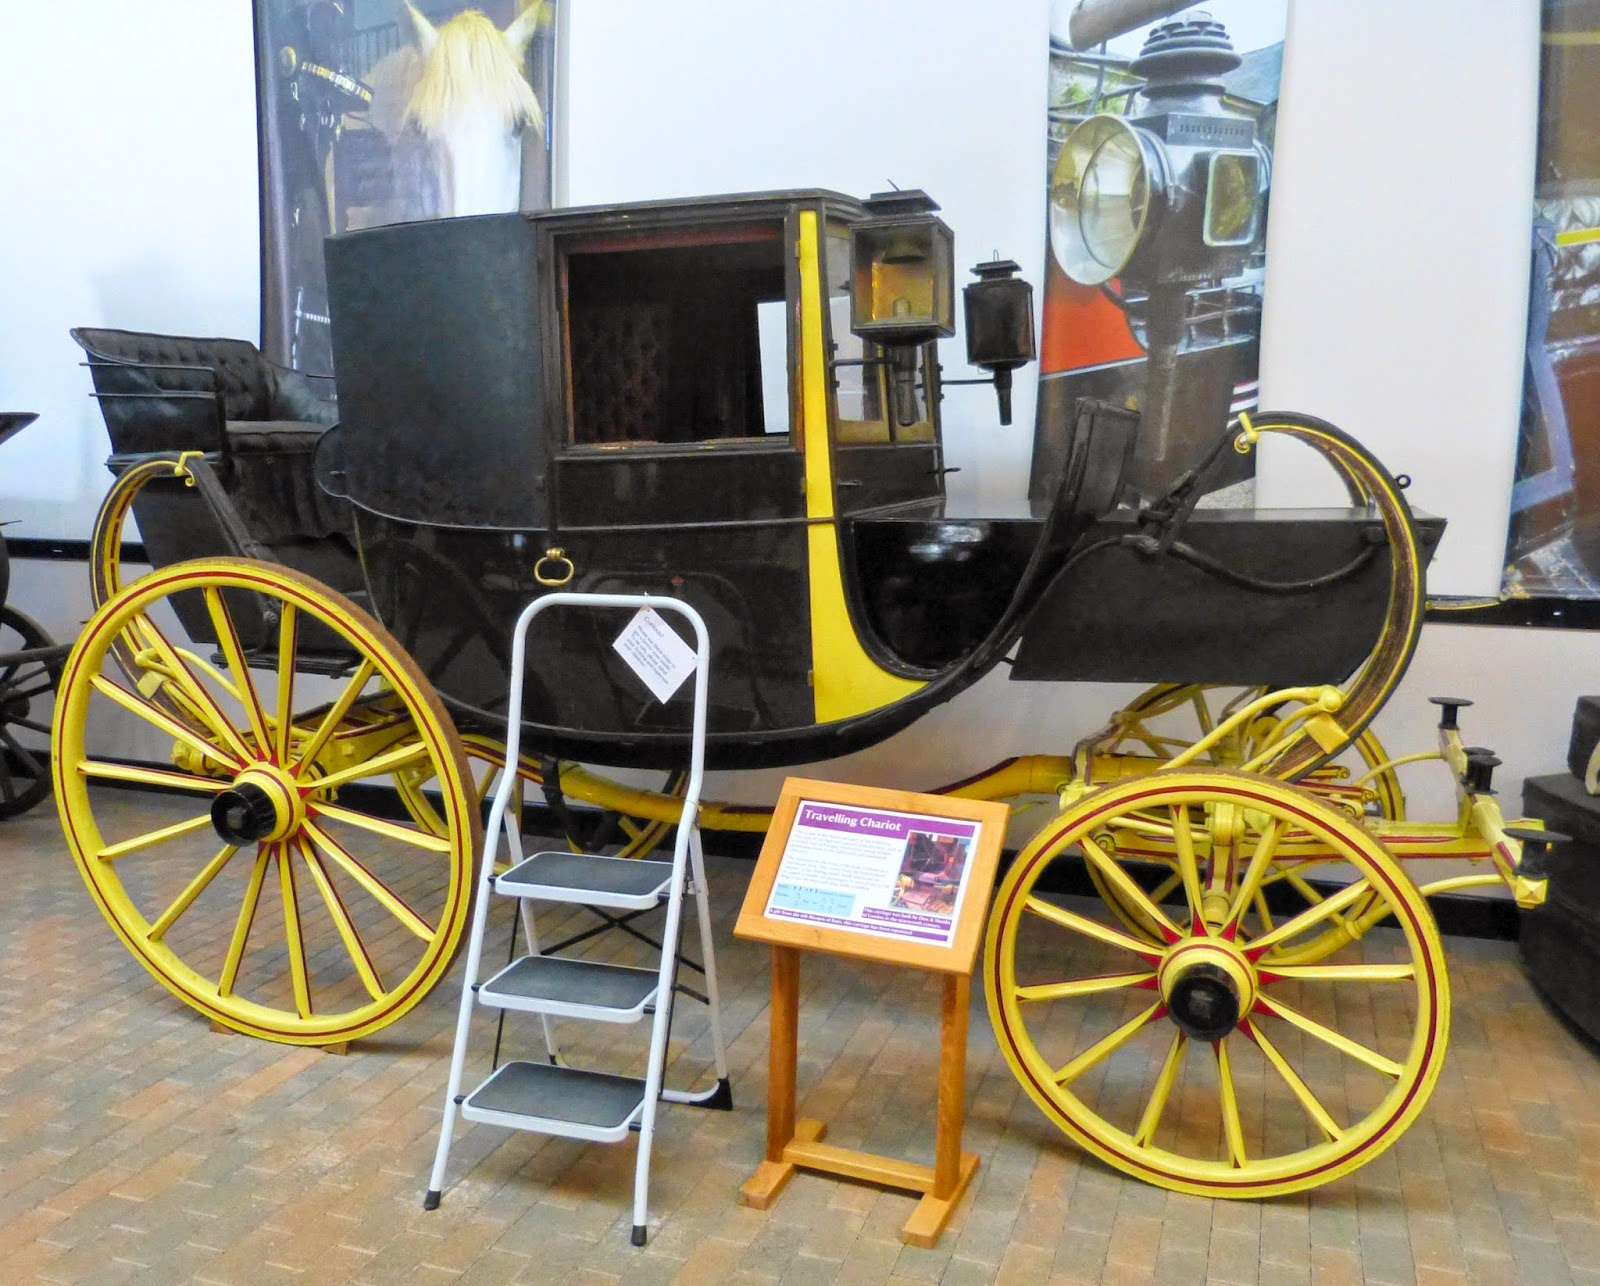 Travelling chariot at the National Trust Carriage Museum, Arlington Court